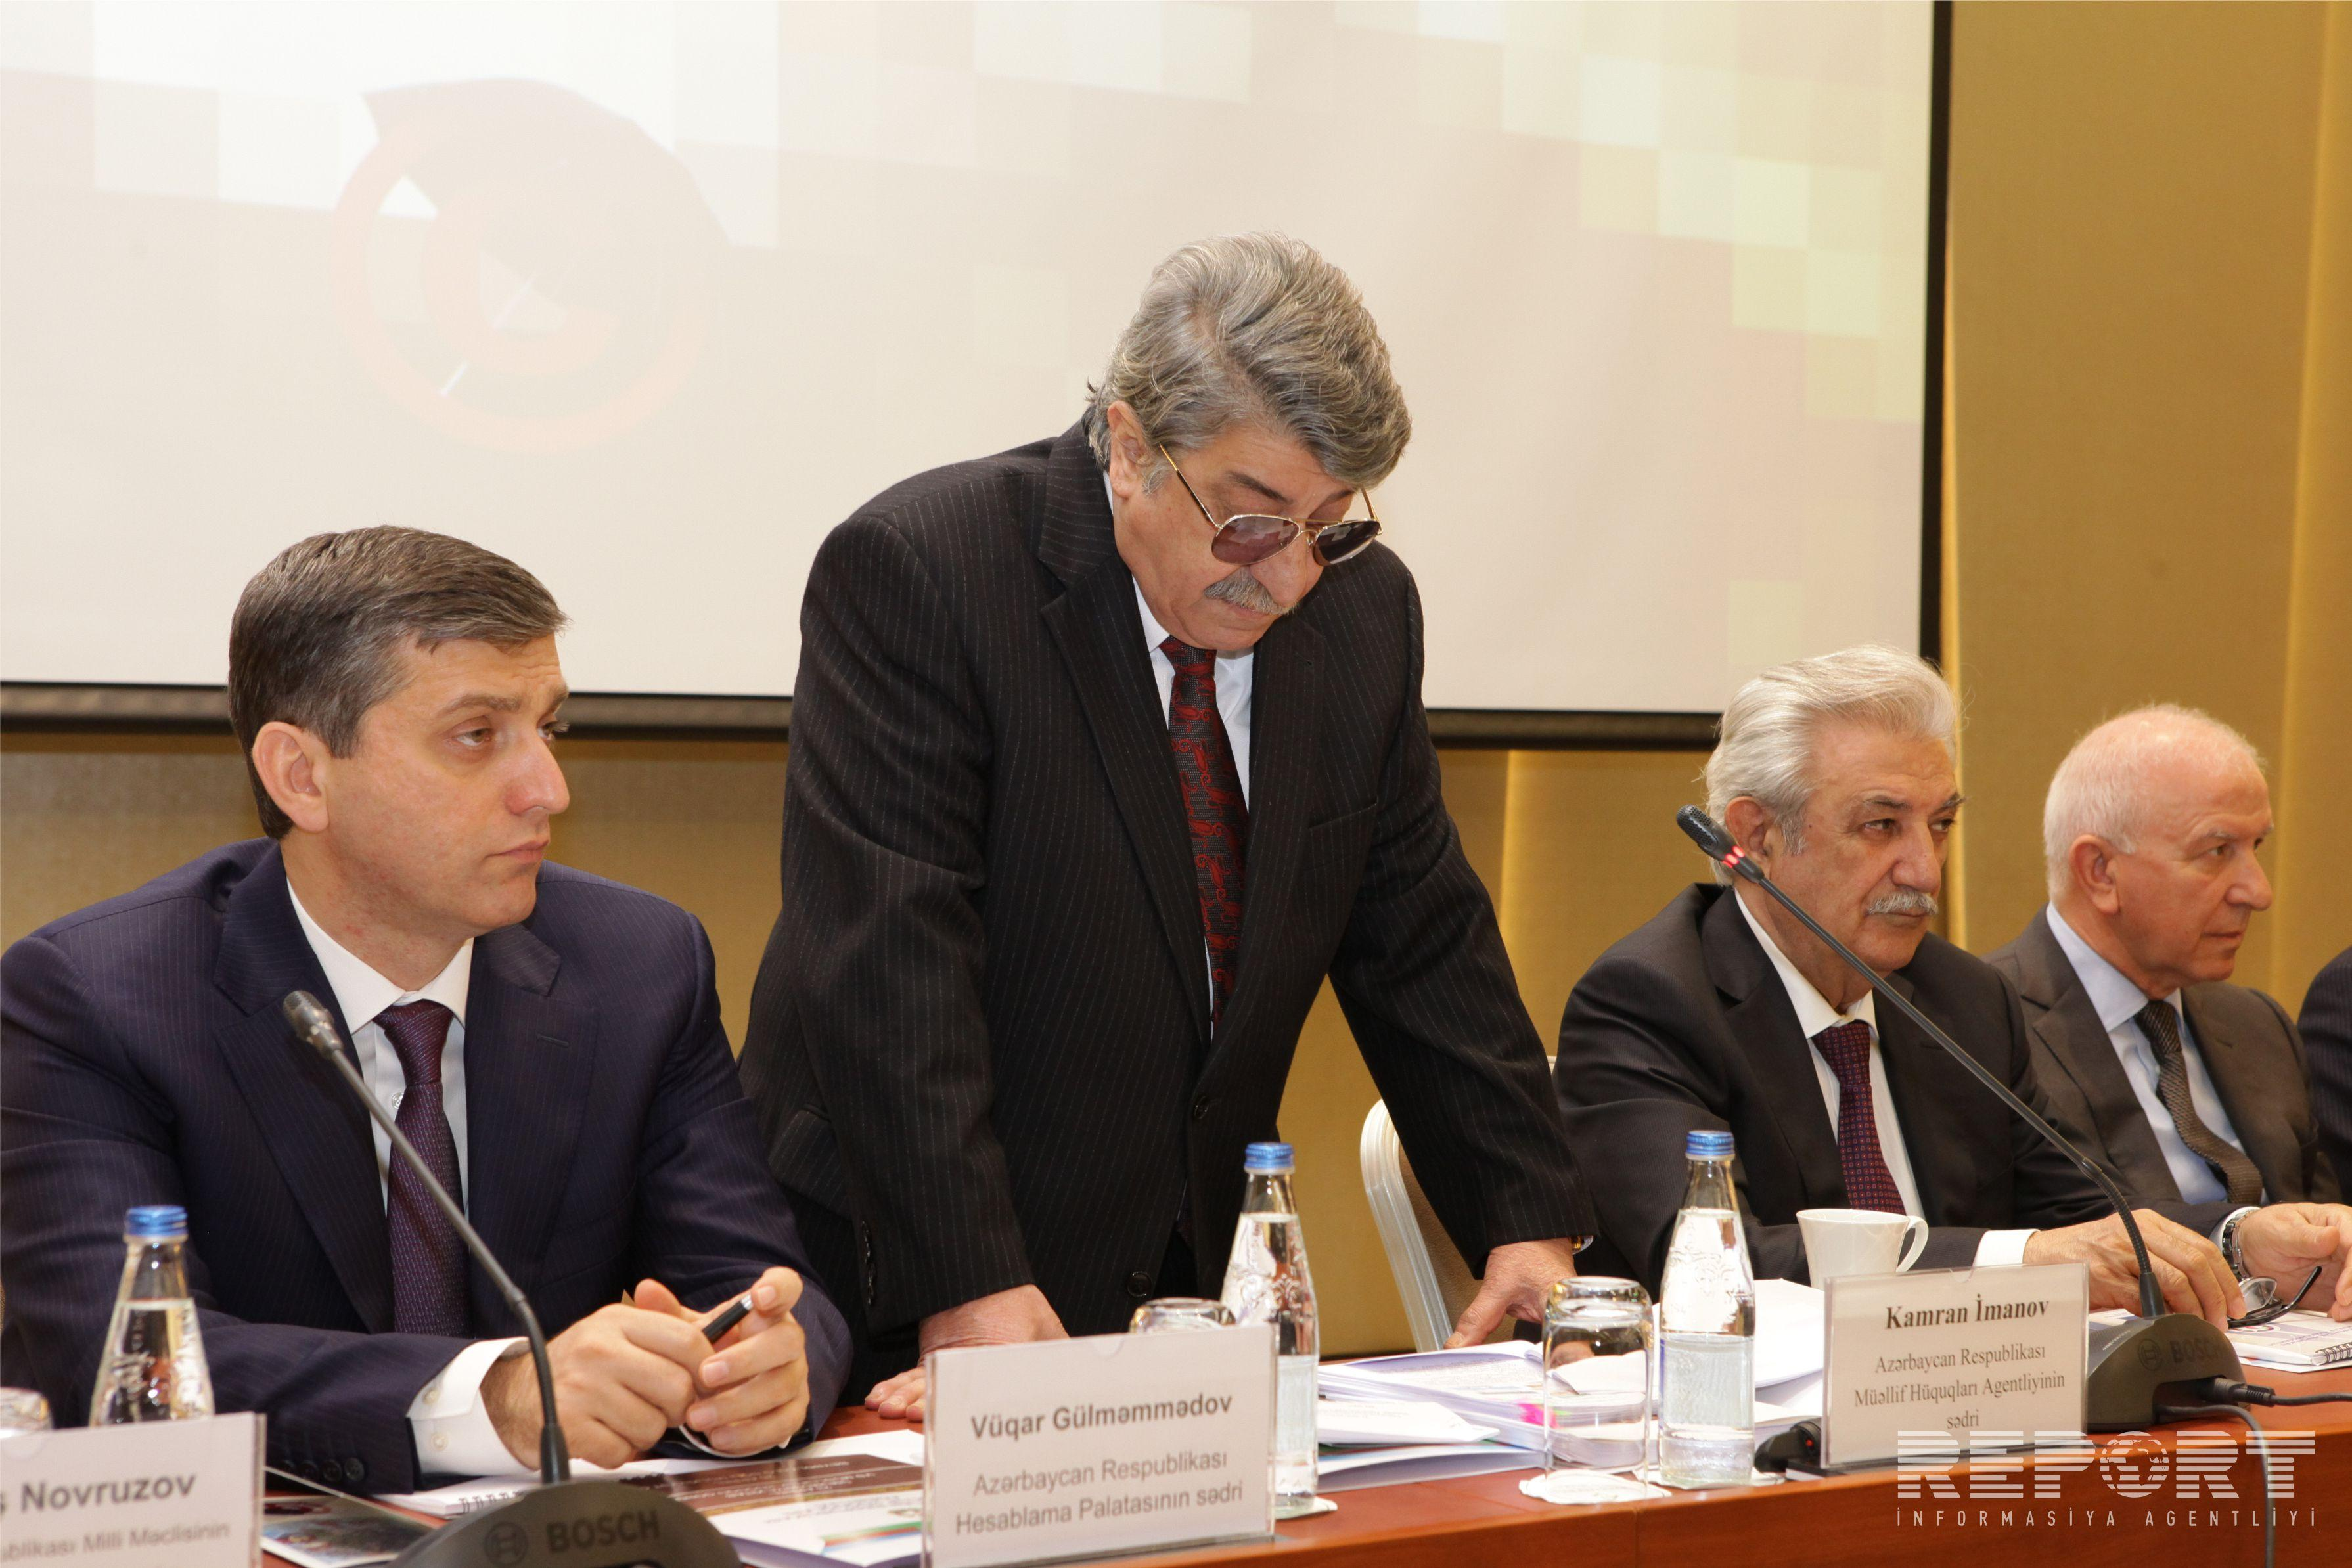 Agency chairman: Armenians humiliate honor and dignity of other nations